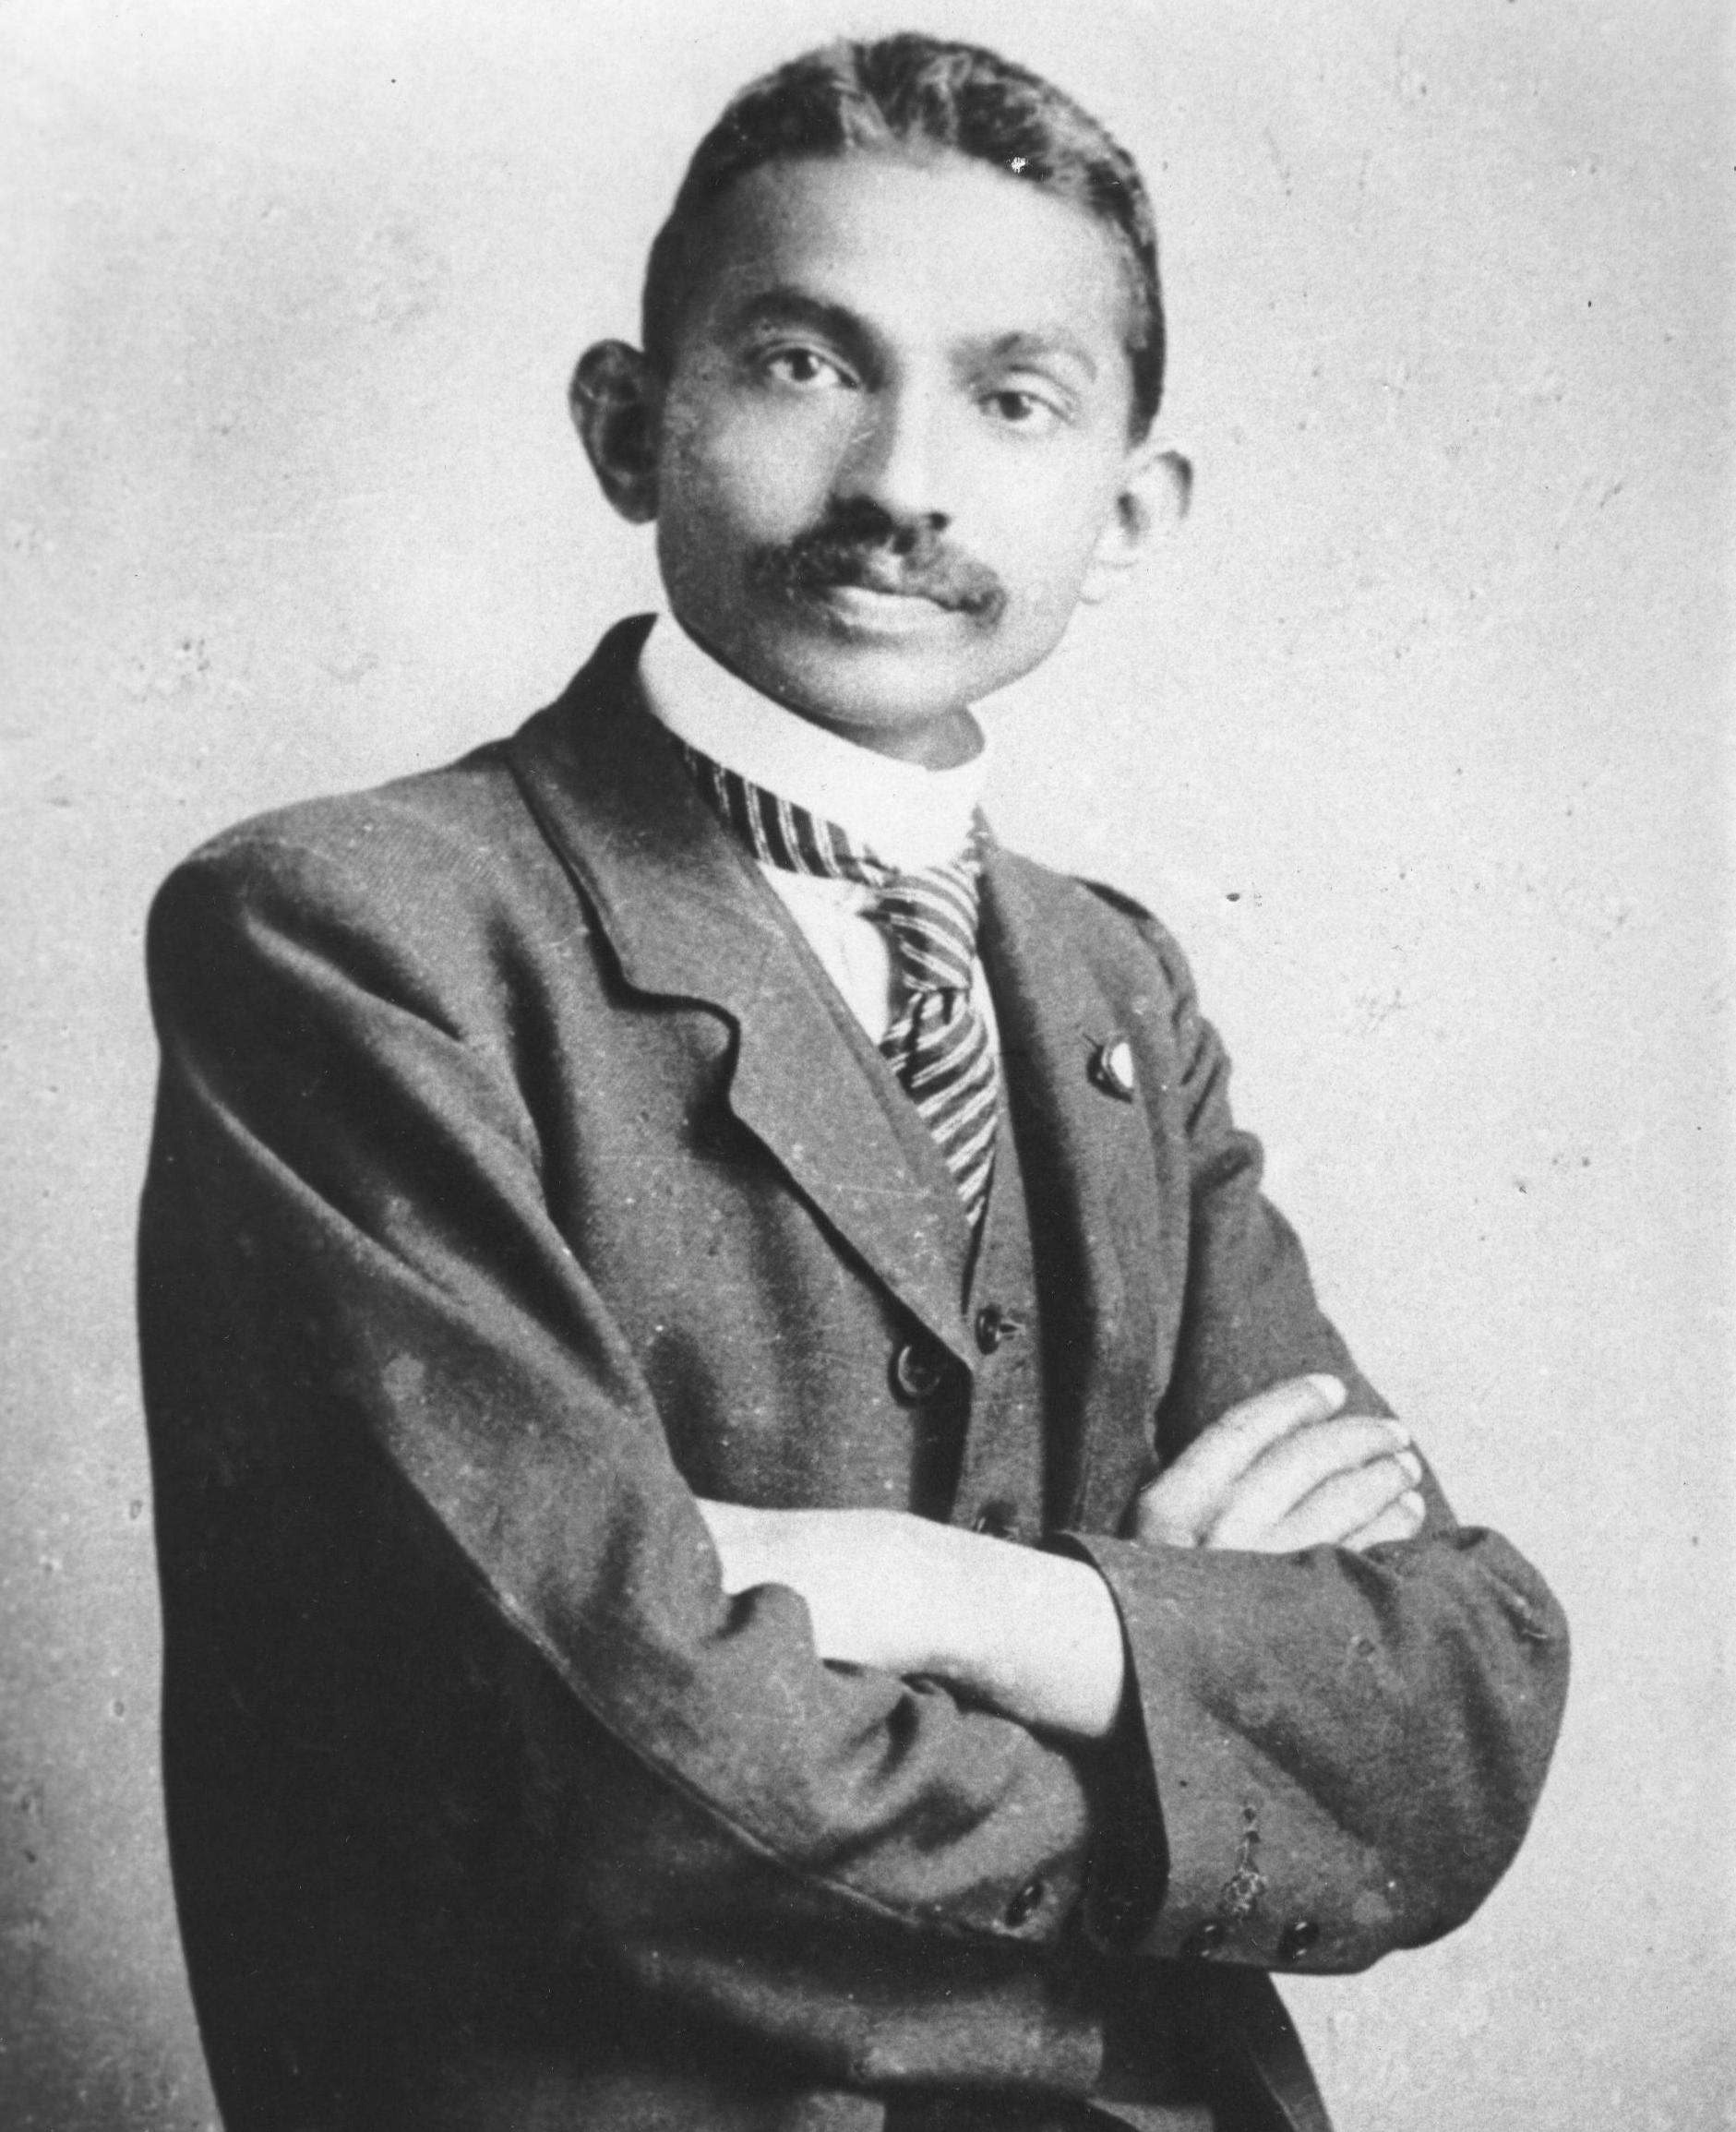 an analysis of the life and accomplishments of mohandas karamchand gandhi an indian independence mov A short summary of 's mohandas gandhi  down peaceful indian protestors, convinced gandhi and india of  from public life again but independence could not.